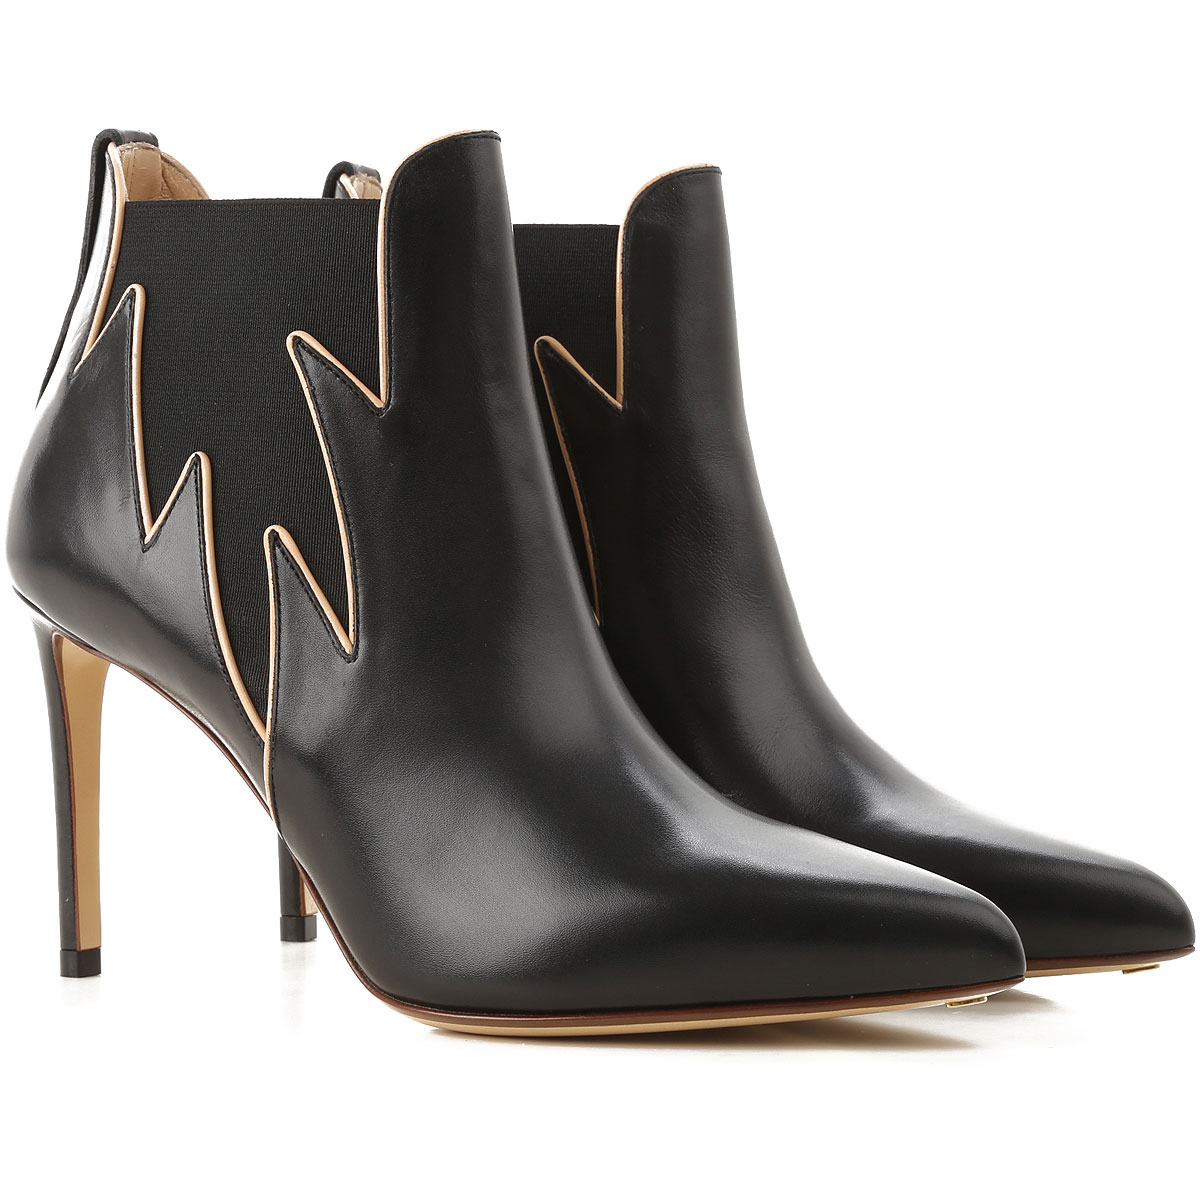 Image of Francesco Russo Boots for Women, Booties, Black, Leather, 2017, 10 6 7 8 8.5 9